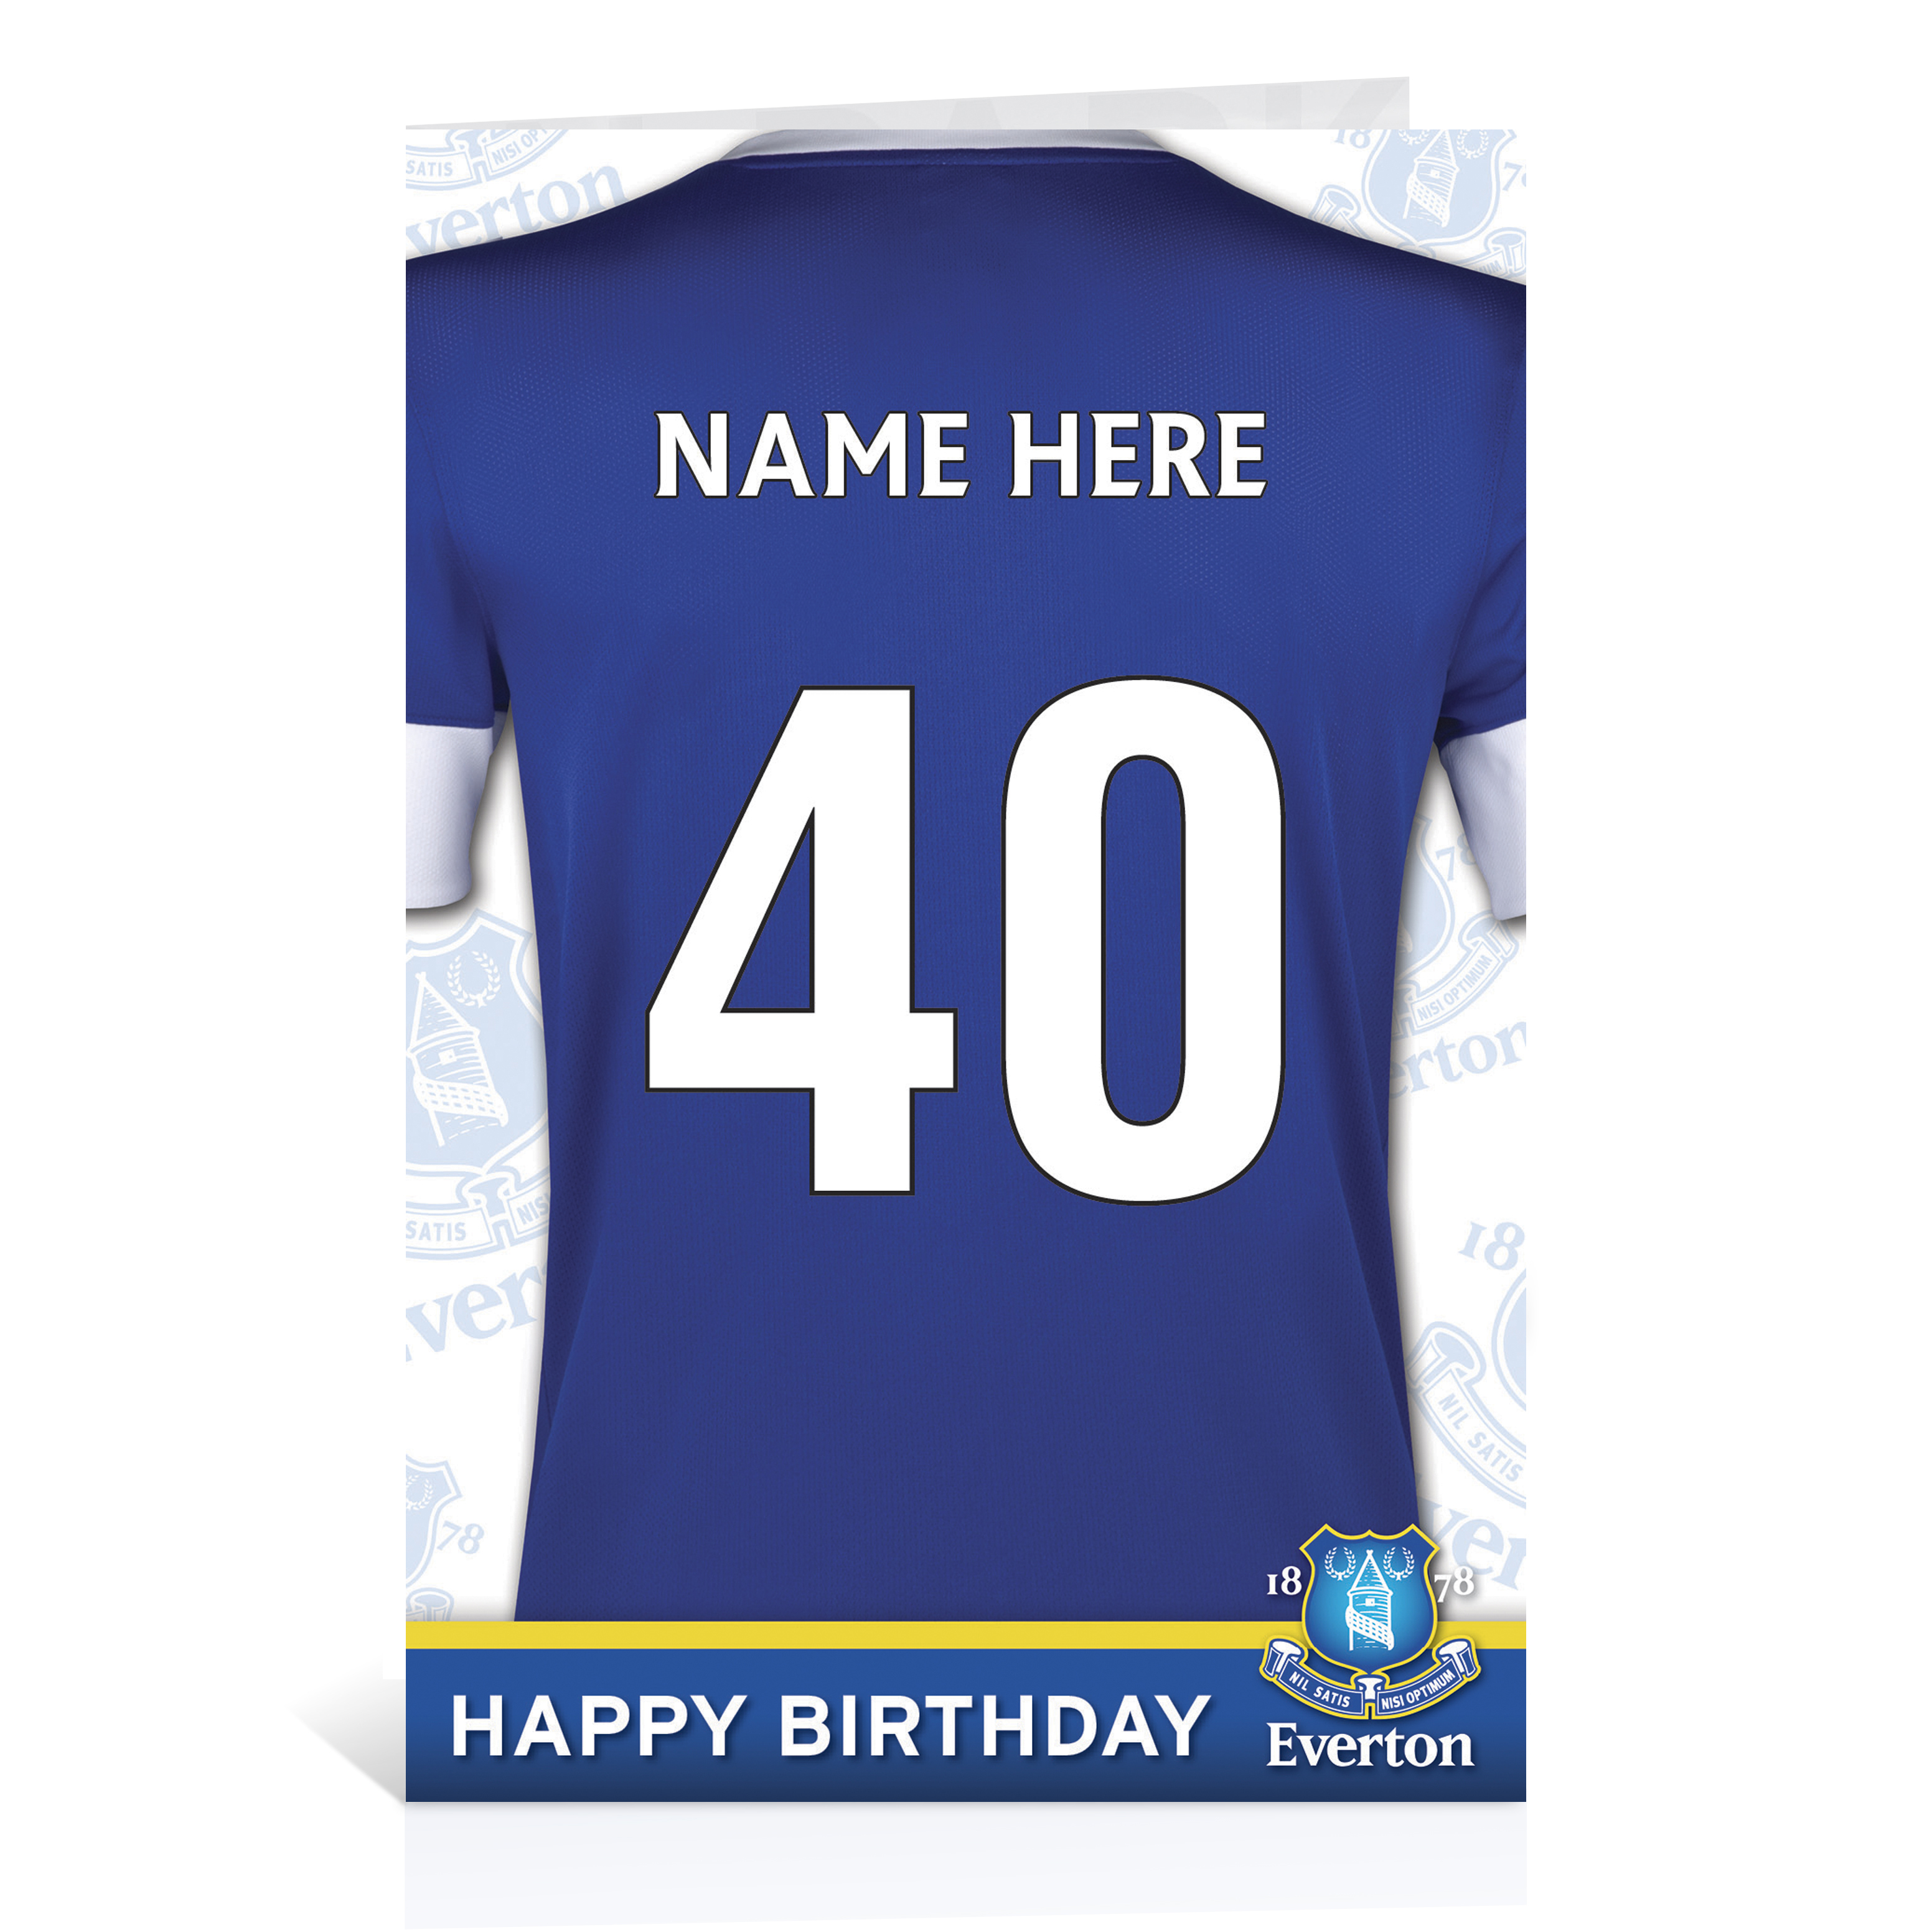 Everton Personalised Shirt Birthday Card